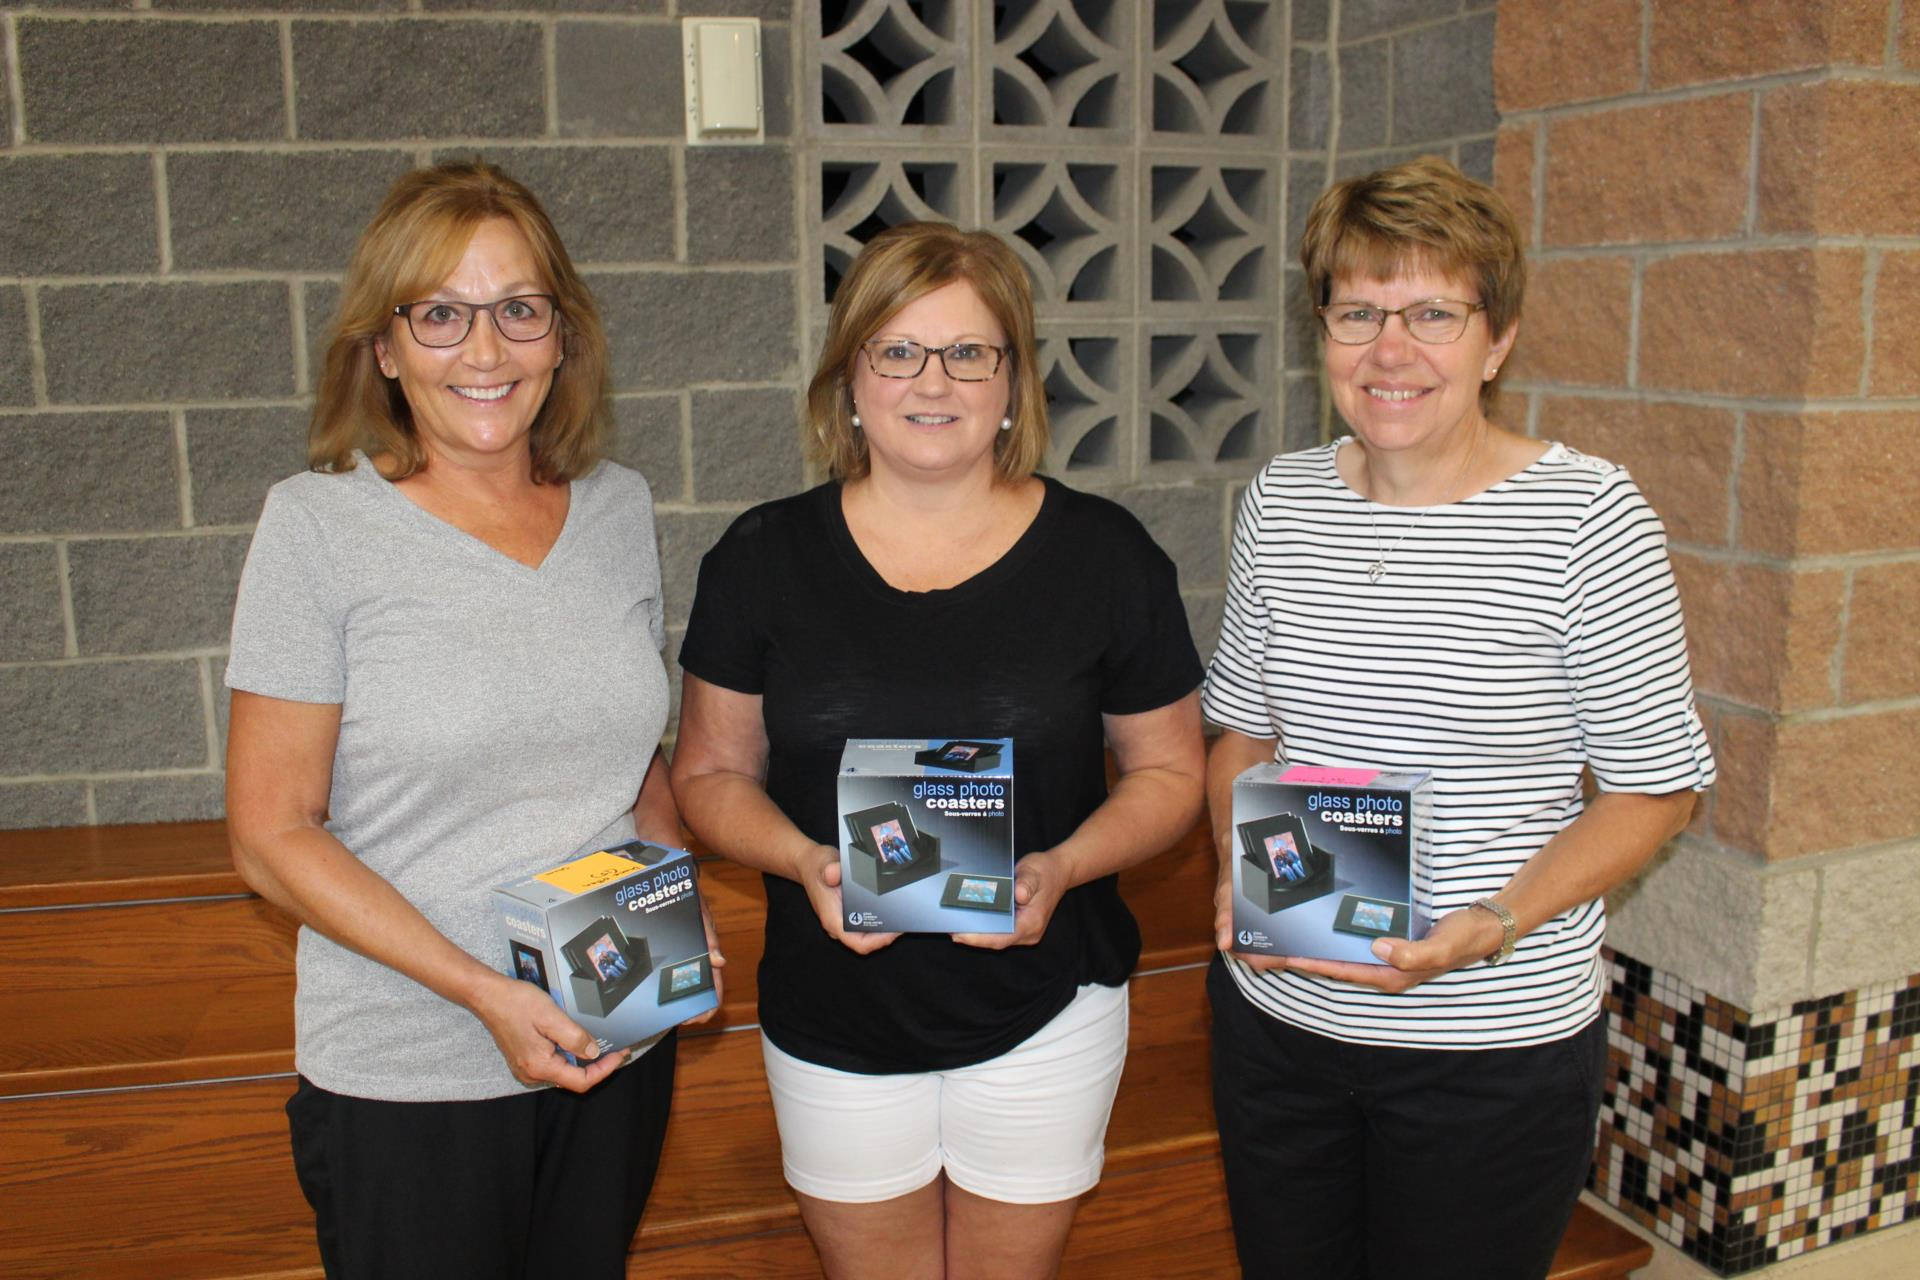 Fifteen Years of Service: Diane Otten, Kathy Coon and Rose Moeder  Not pictured: Karen Bergman and Teresa Heyne